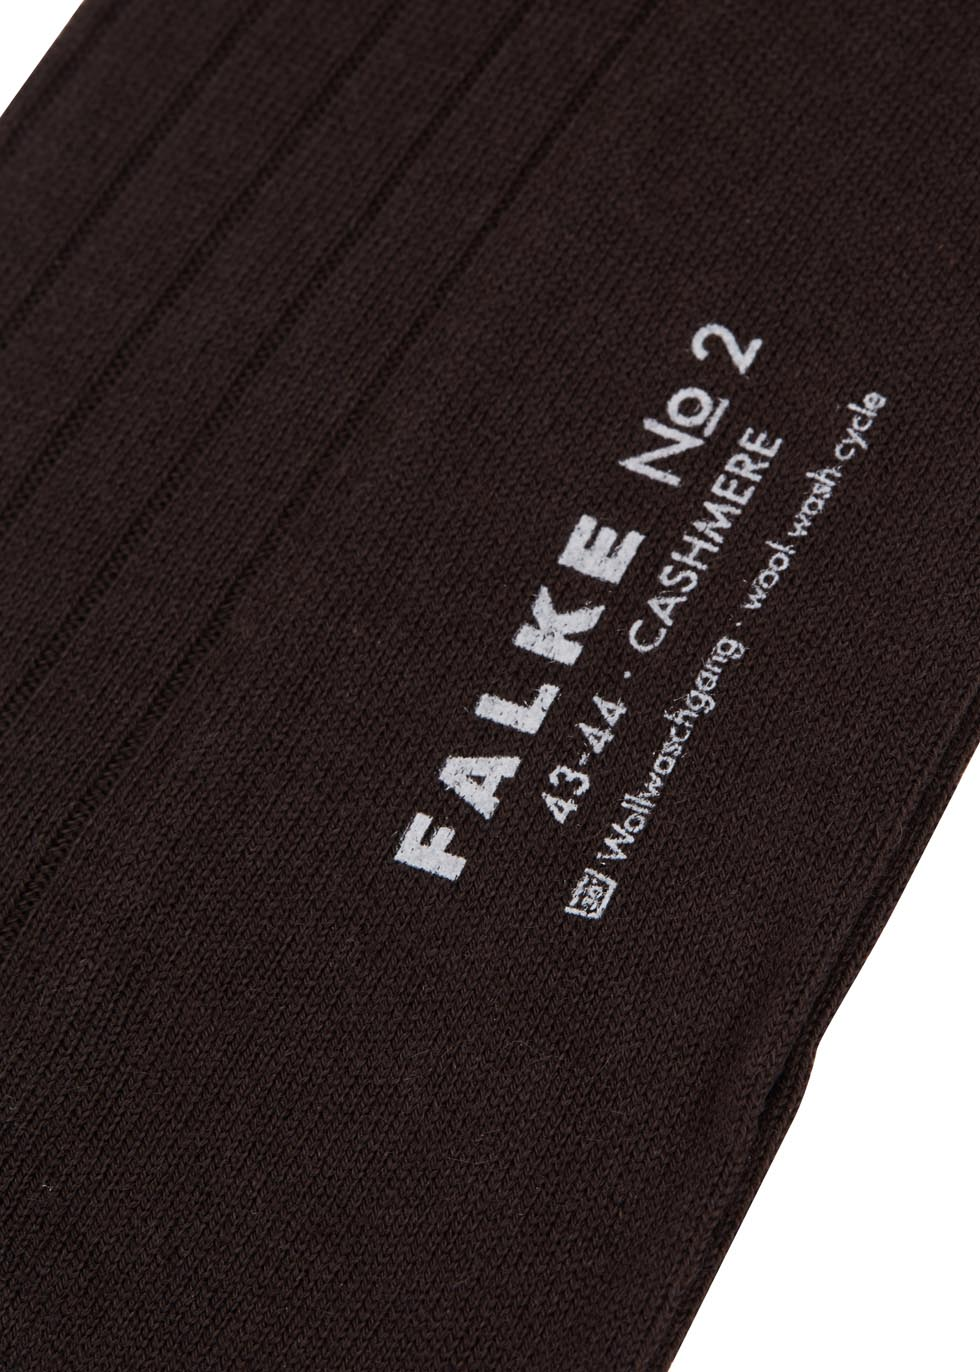 Dark brown cashmere blend socks - Falke